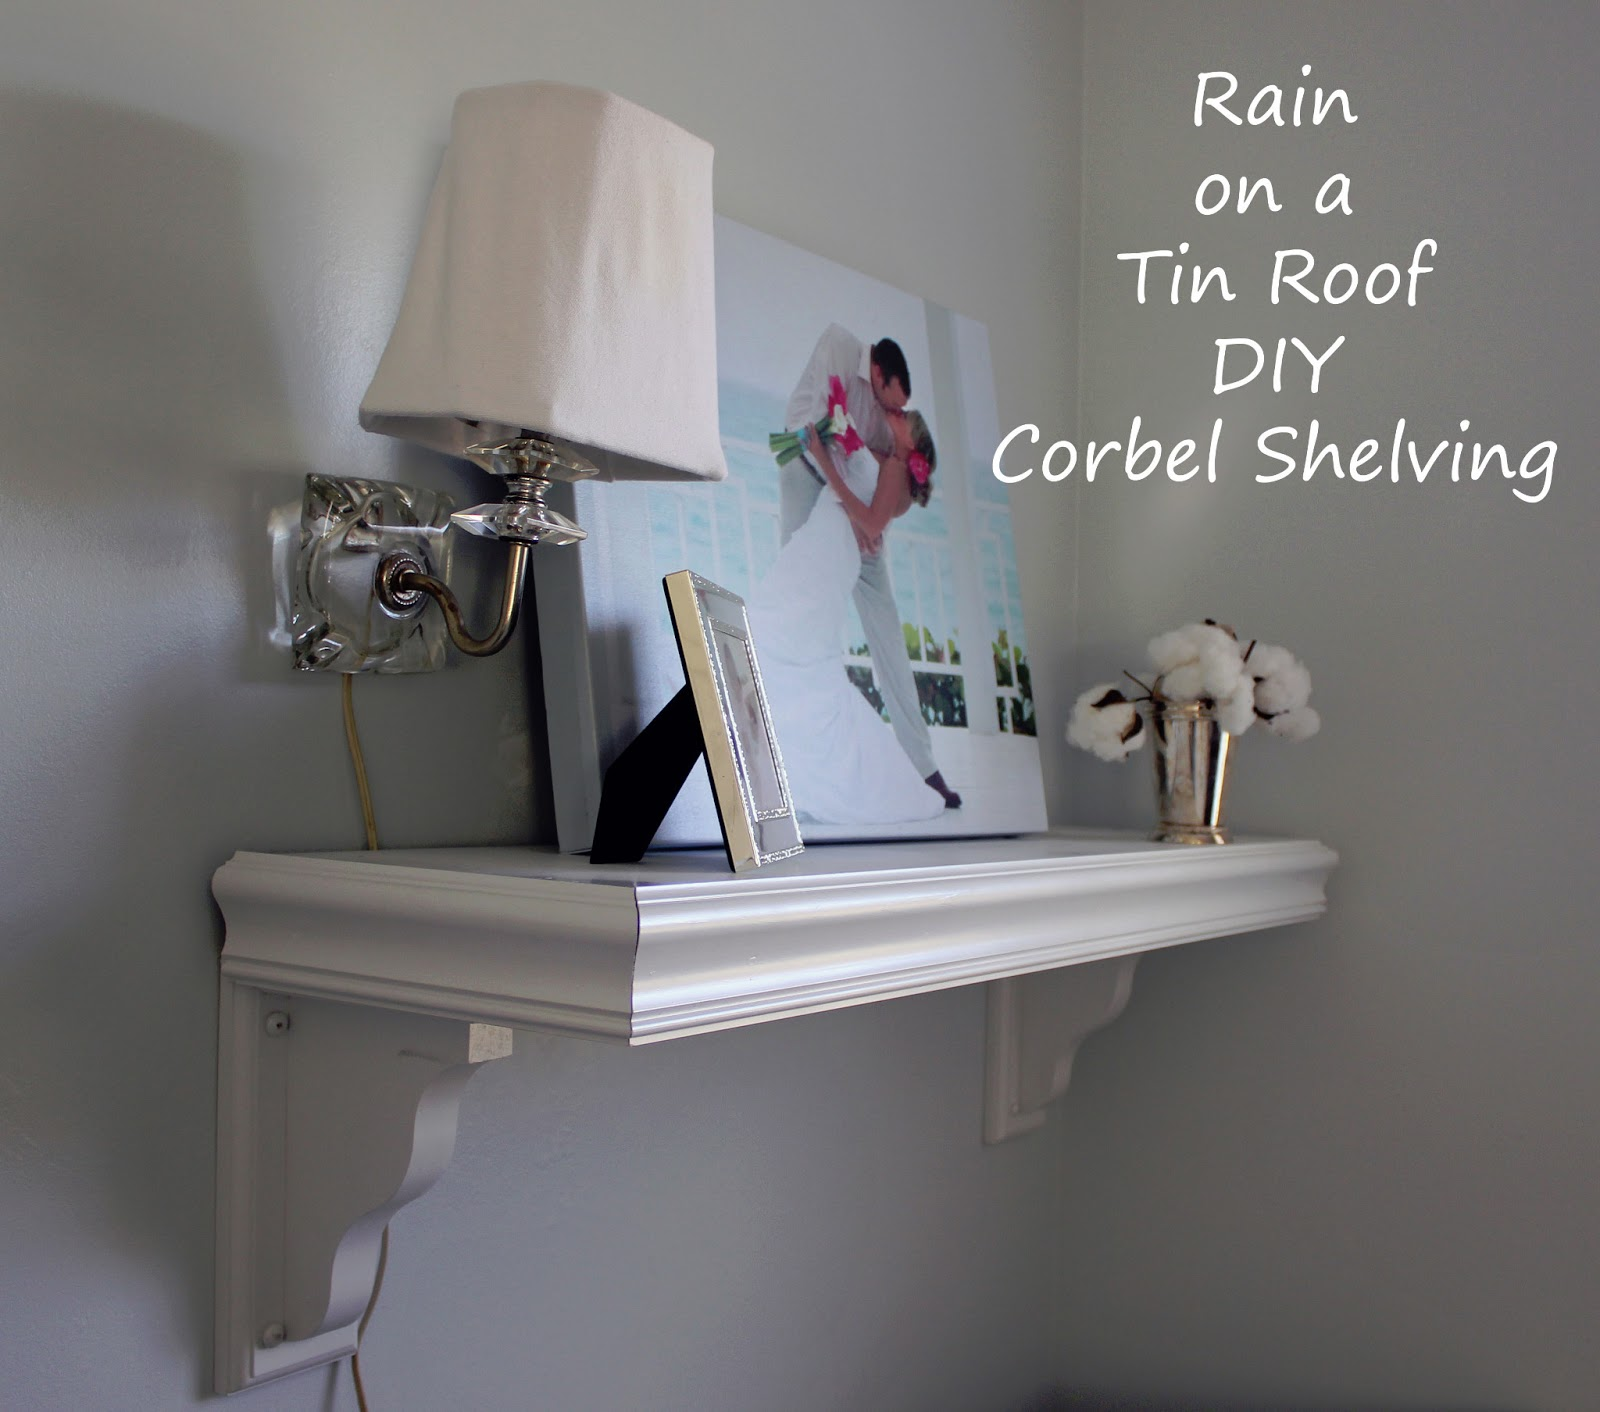 diy corbel shelving rh rainonatinroof com corbels for shelves for sale wood corbels for shelves